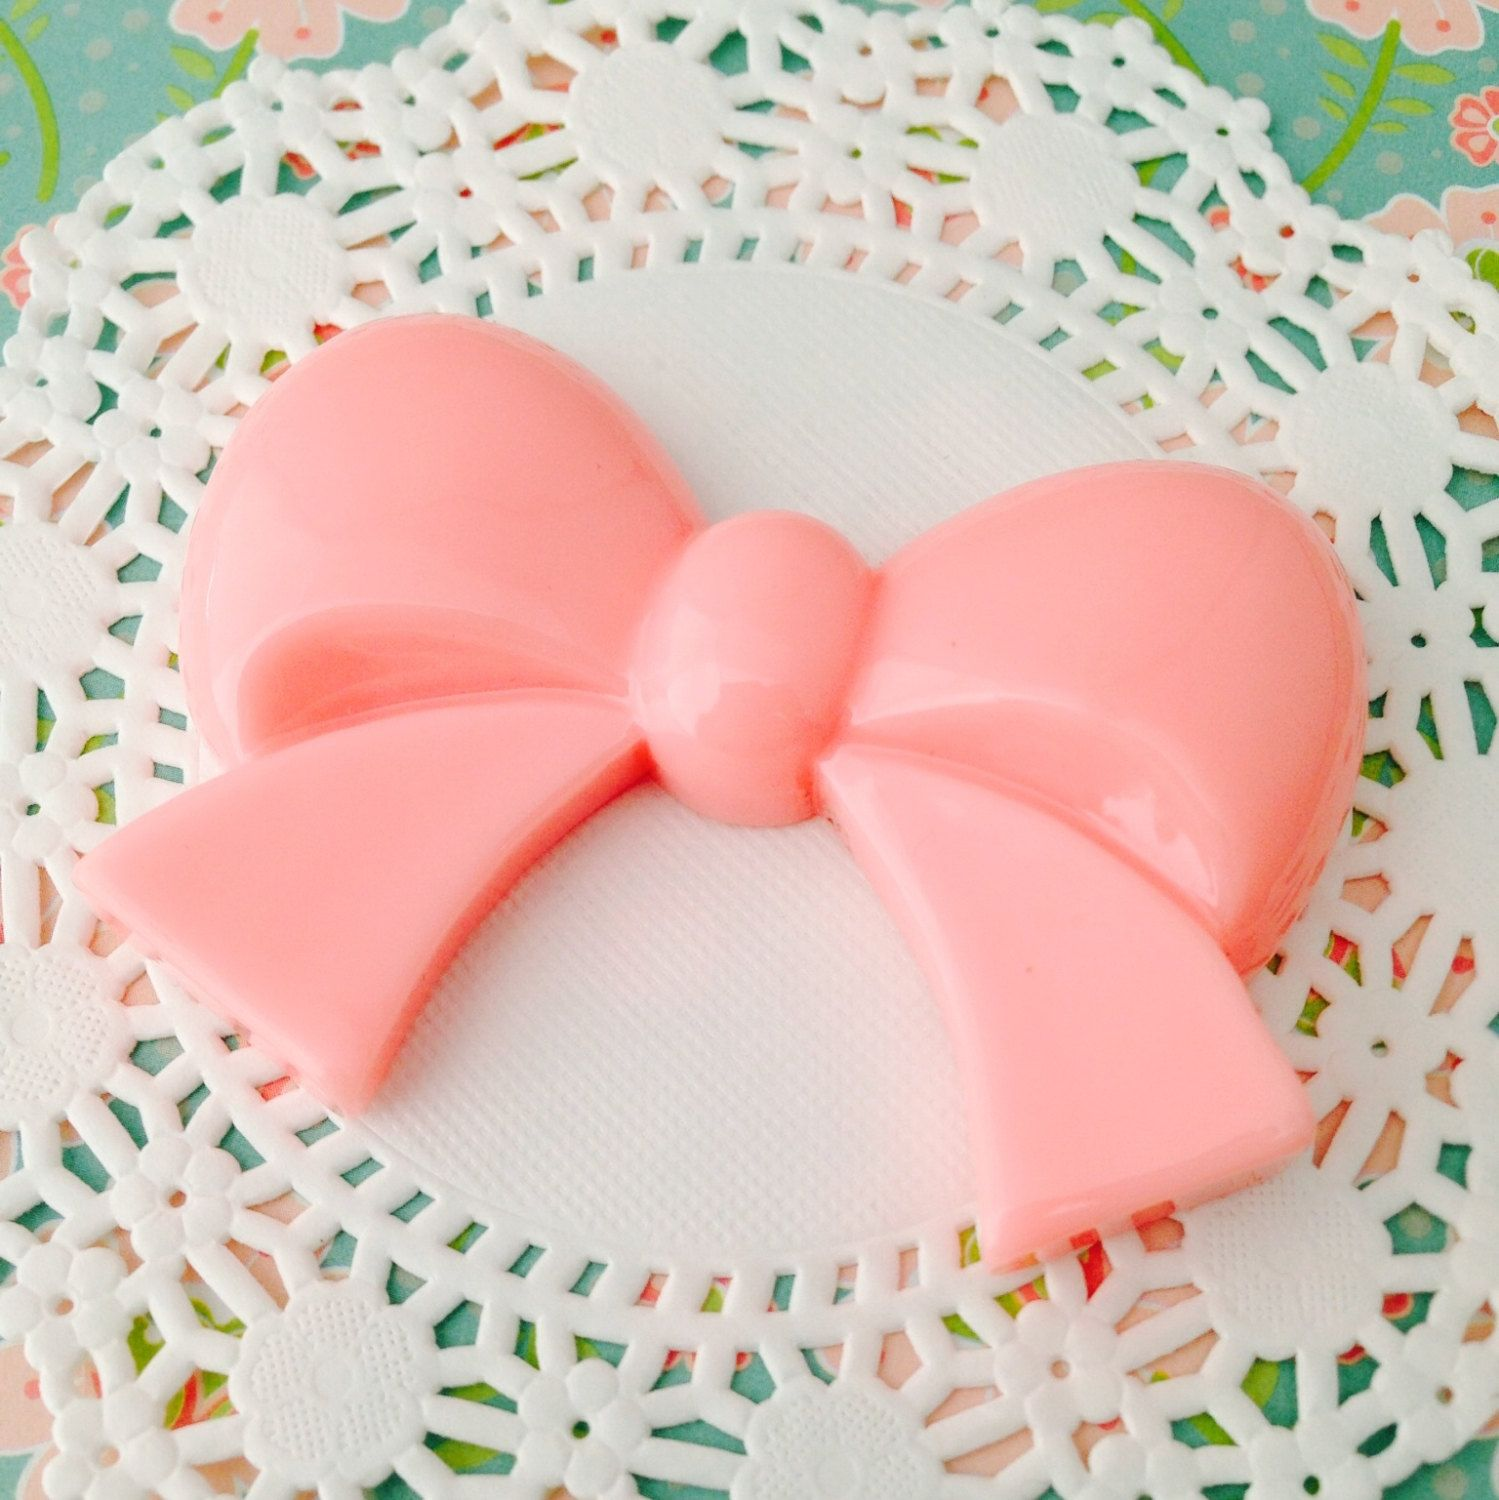 Extra Large XL Light Pink Kawaii Bow Cabochon by Lucifurious on Etsy https://www.etsy.com/listing/179117398/extra-large-xl-light-pink-kawaii-bow